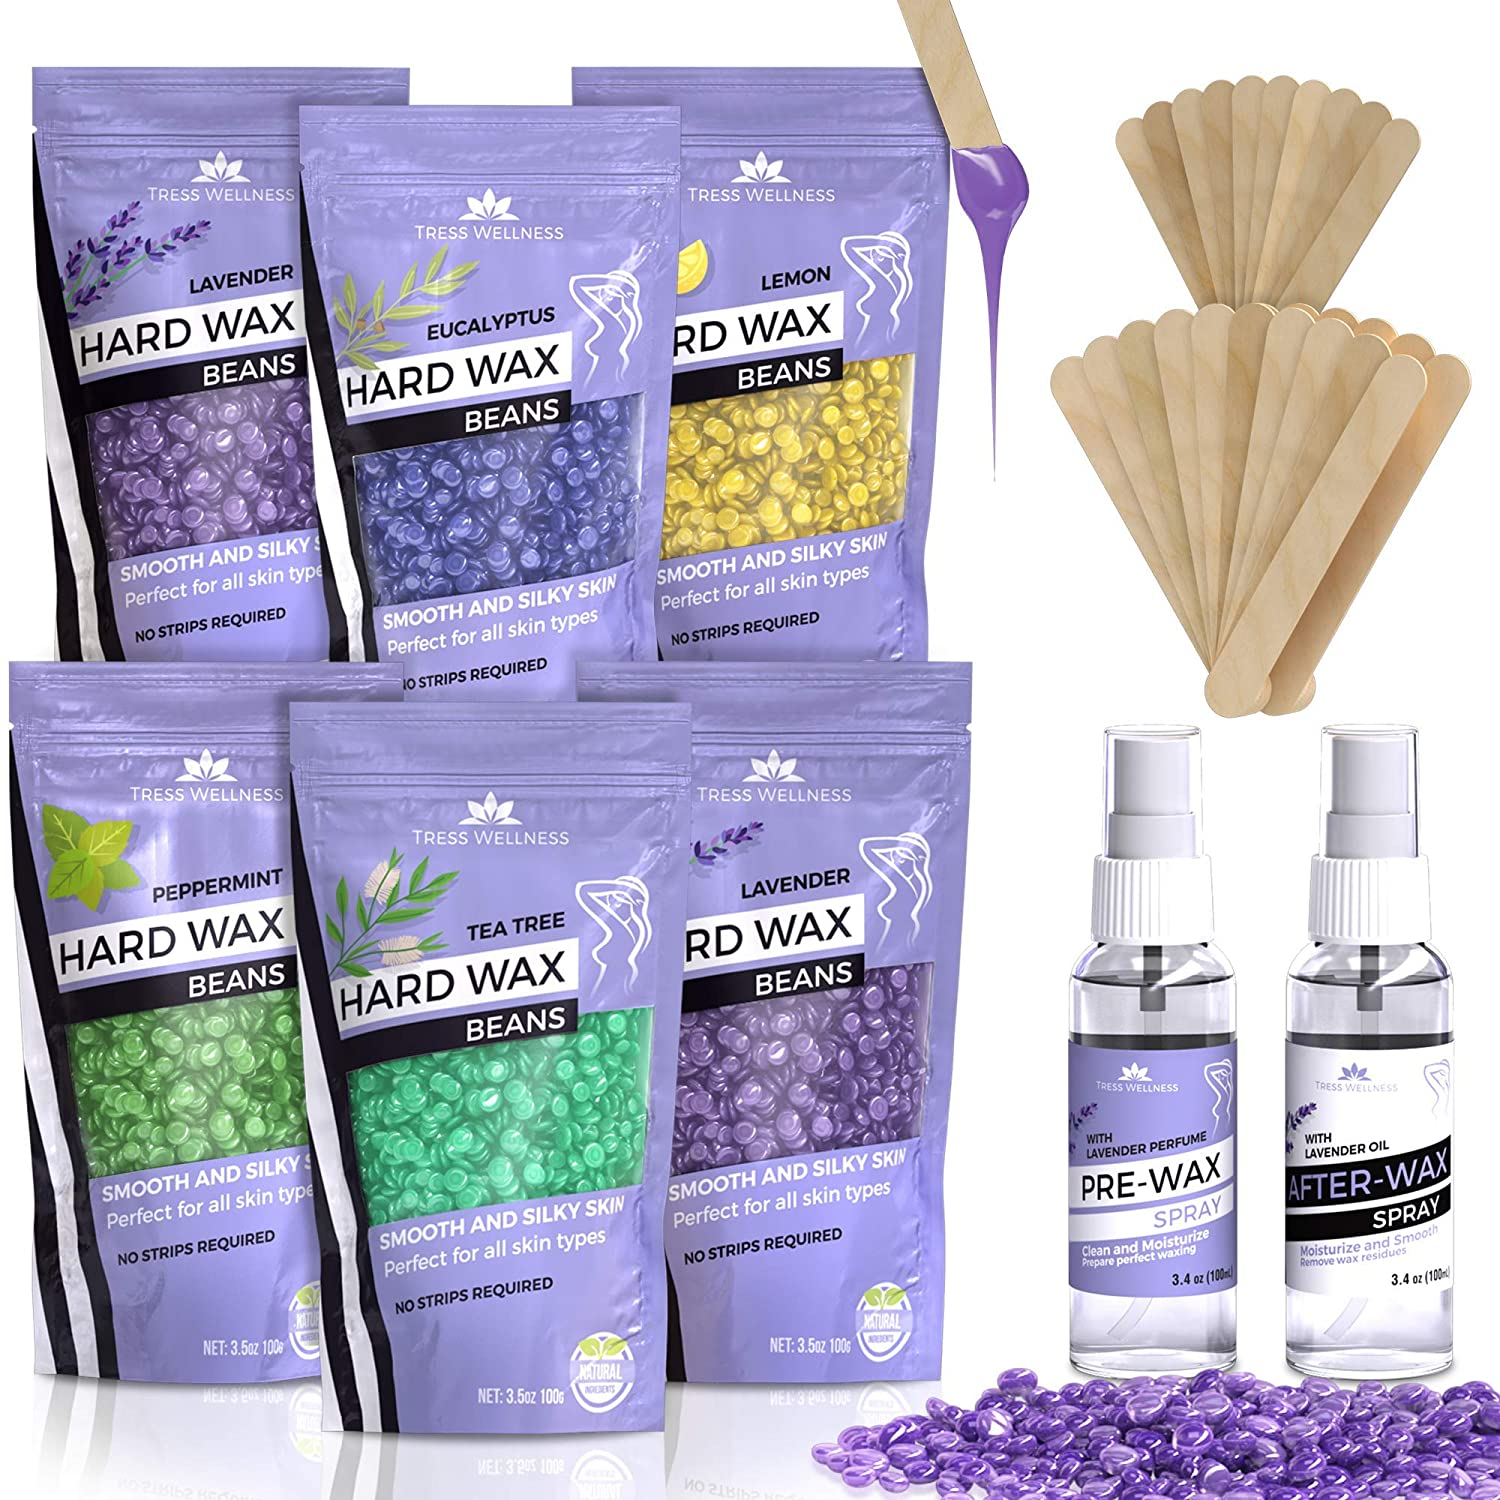 Hard Wax Beans Kit [6 Bags + Pre & After Spray] Hard Wax Beads Hair Removal - Waxing Beds Fxswede AB